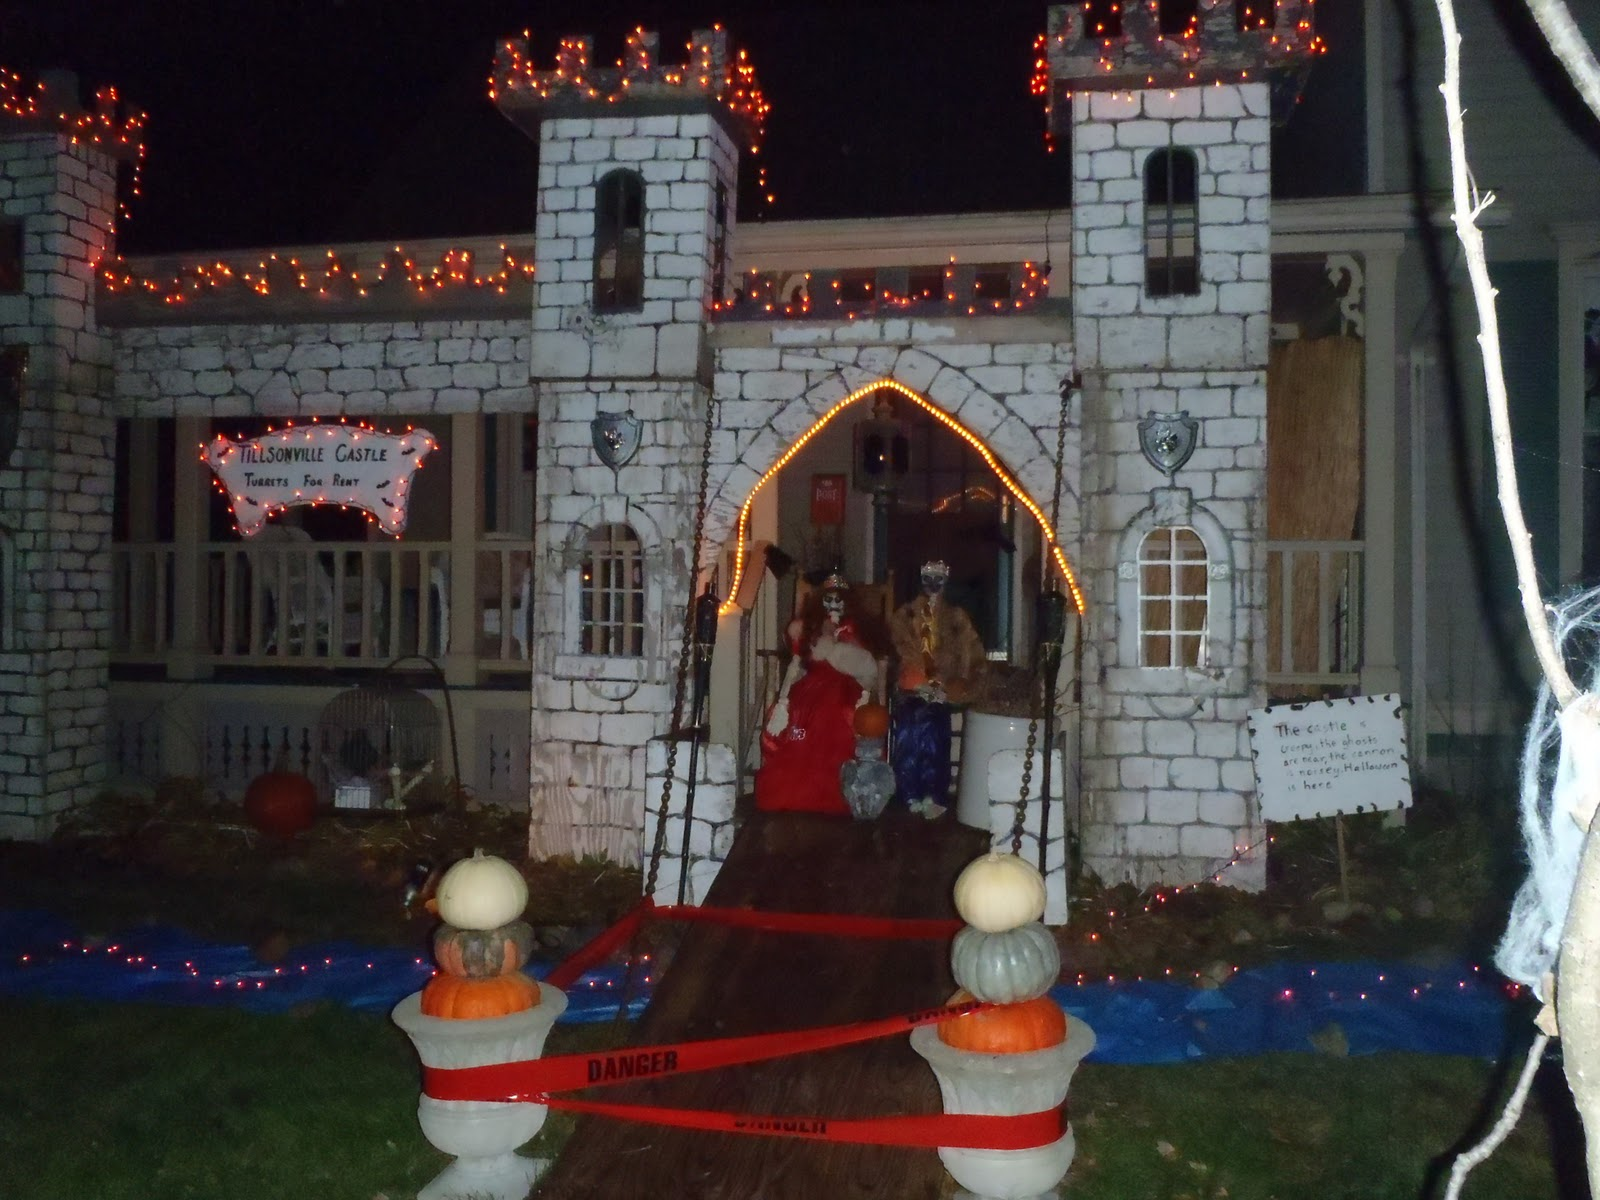 28 halloween decorations that nailed it - gallery | ebaum's world